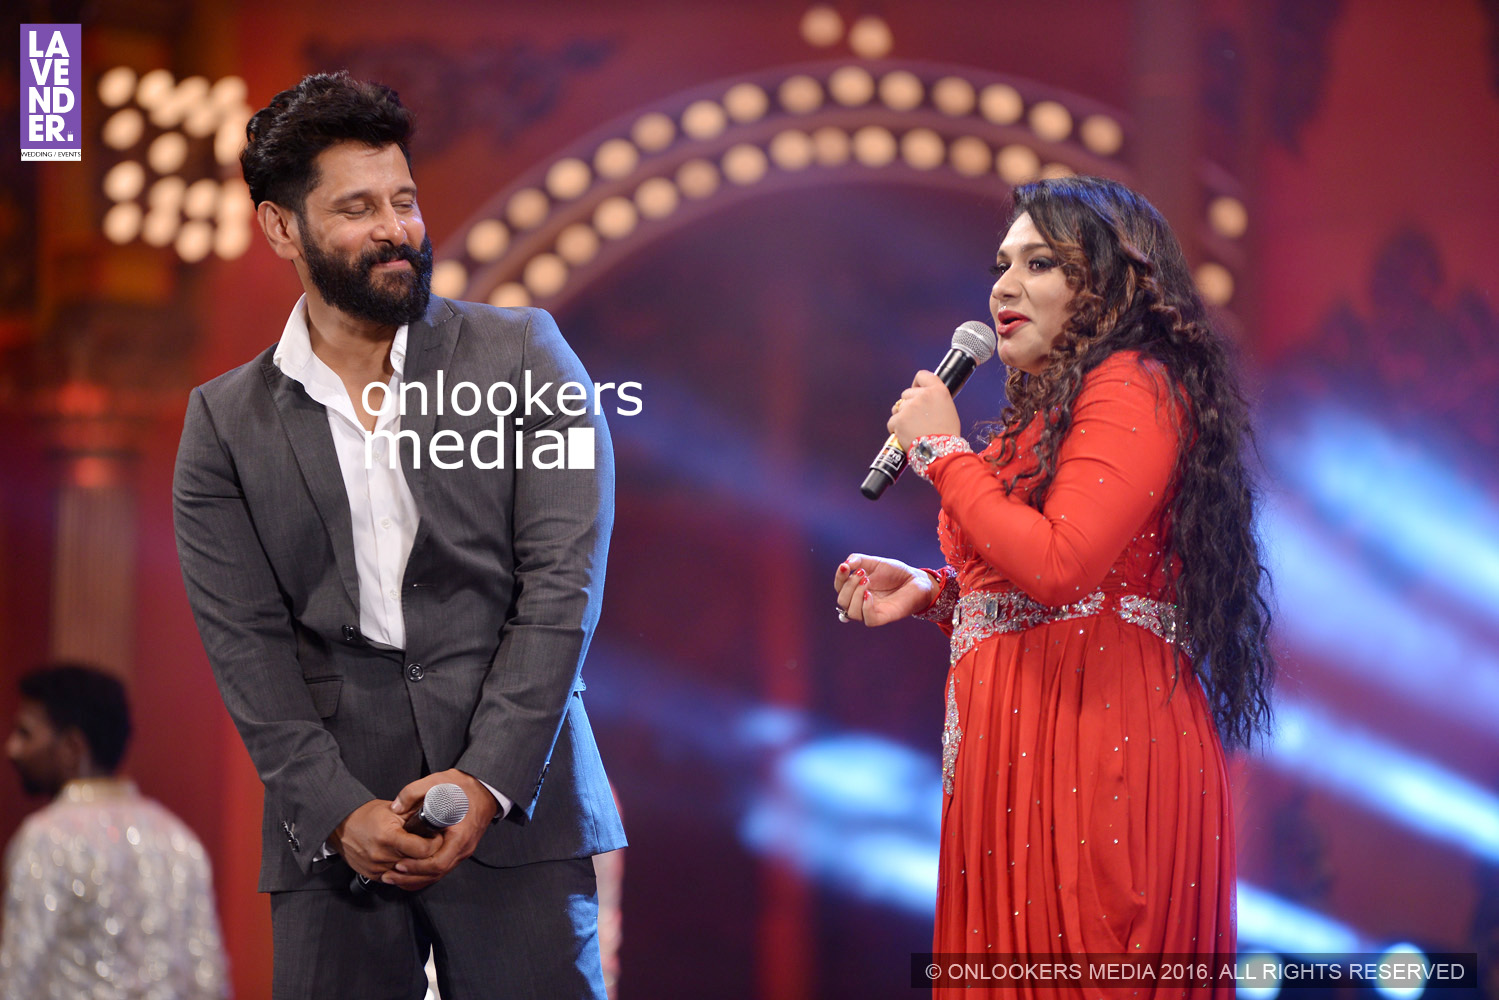 http://onlookersmedia.in/wp-content/uploads/2016/02/Vikram-at-Asianet-Film-Awards-2016-68.jpg